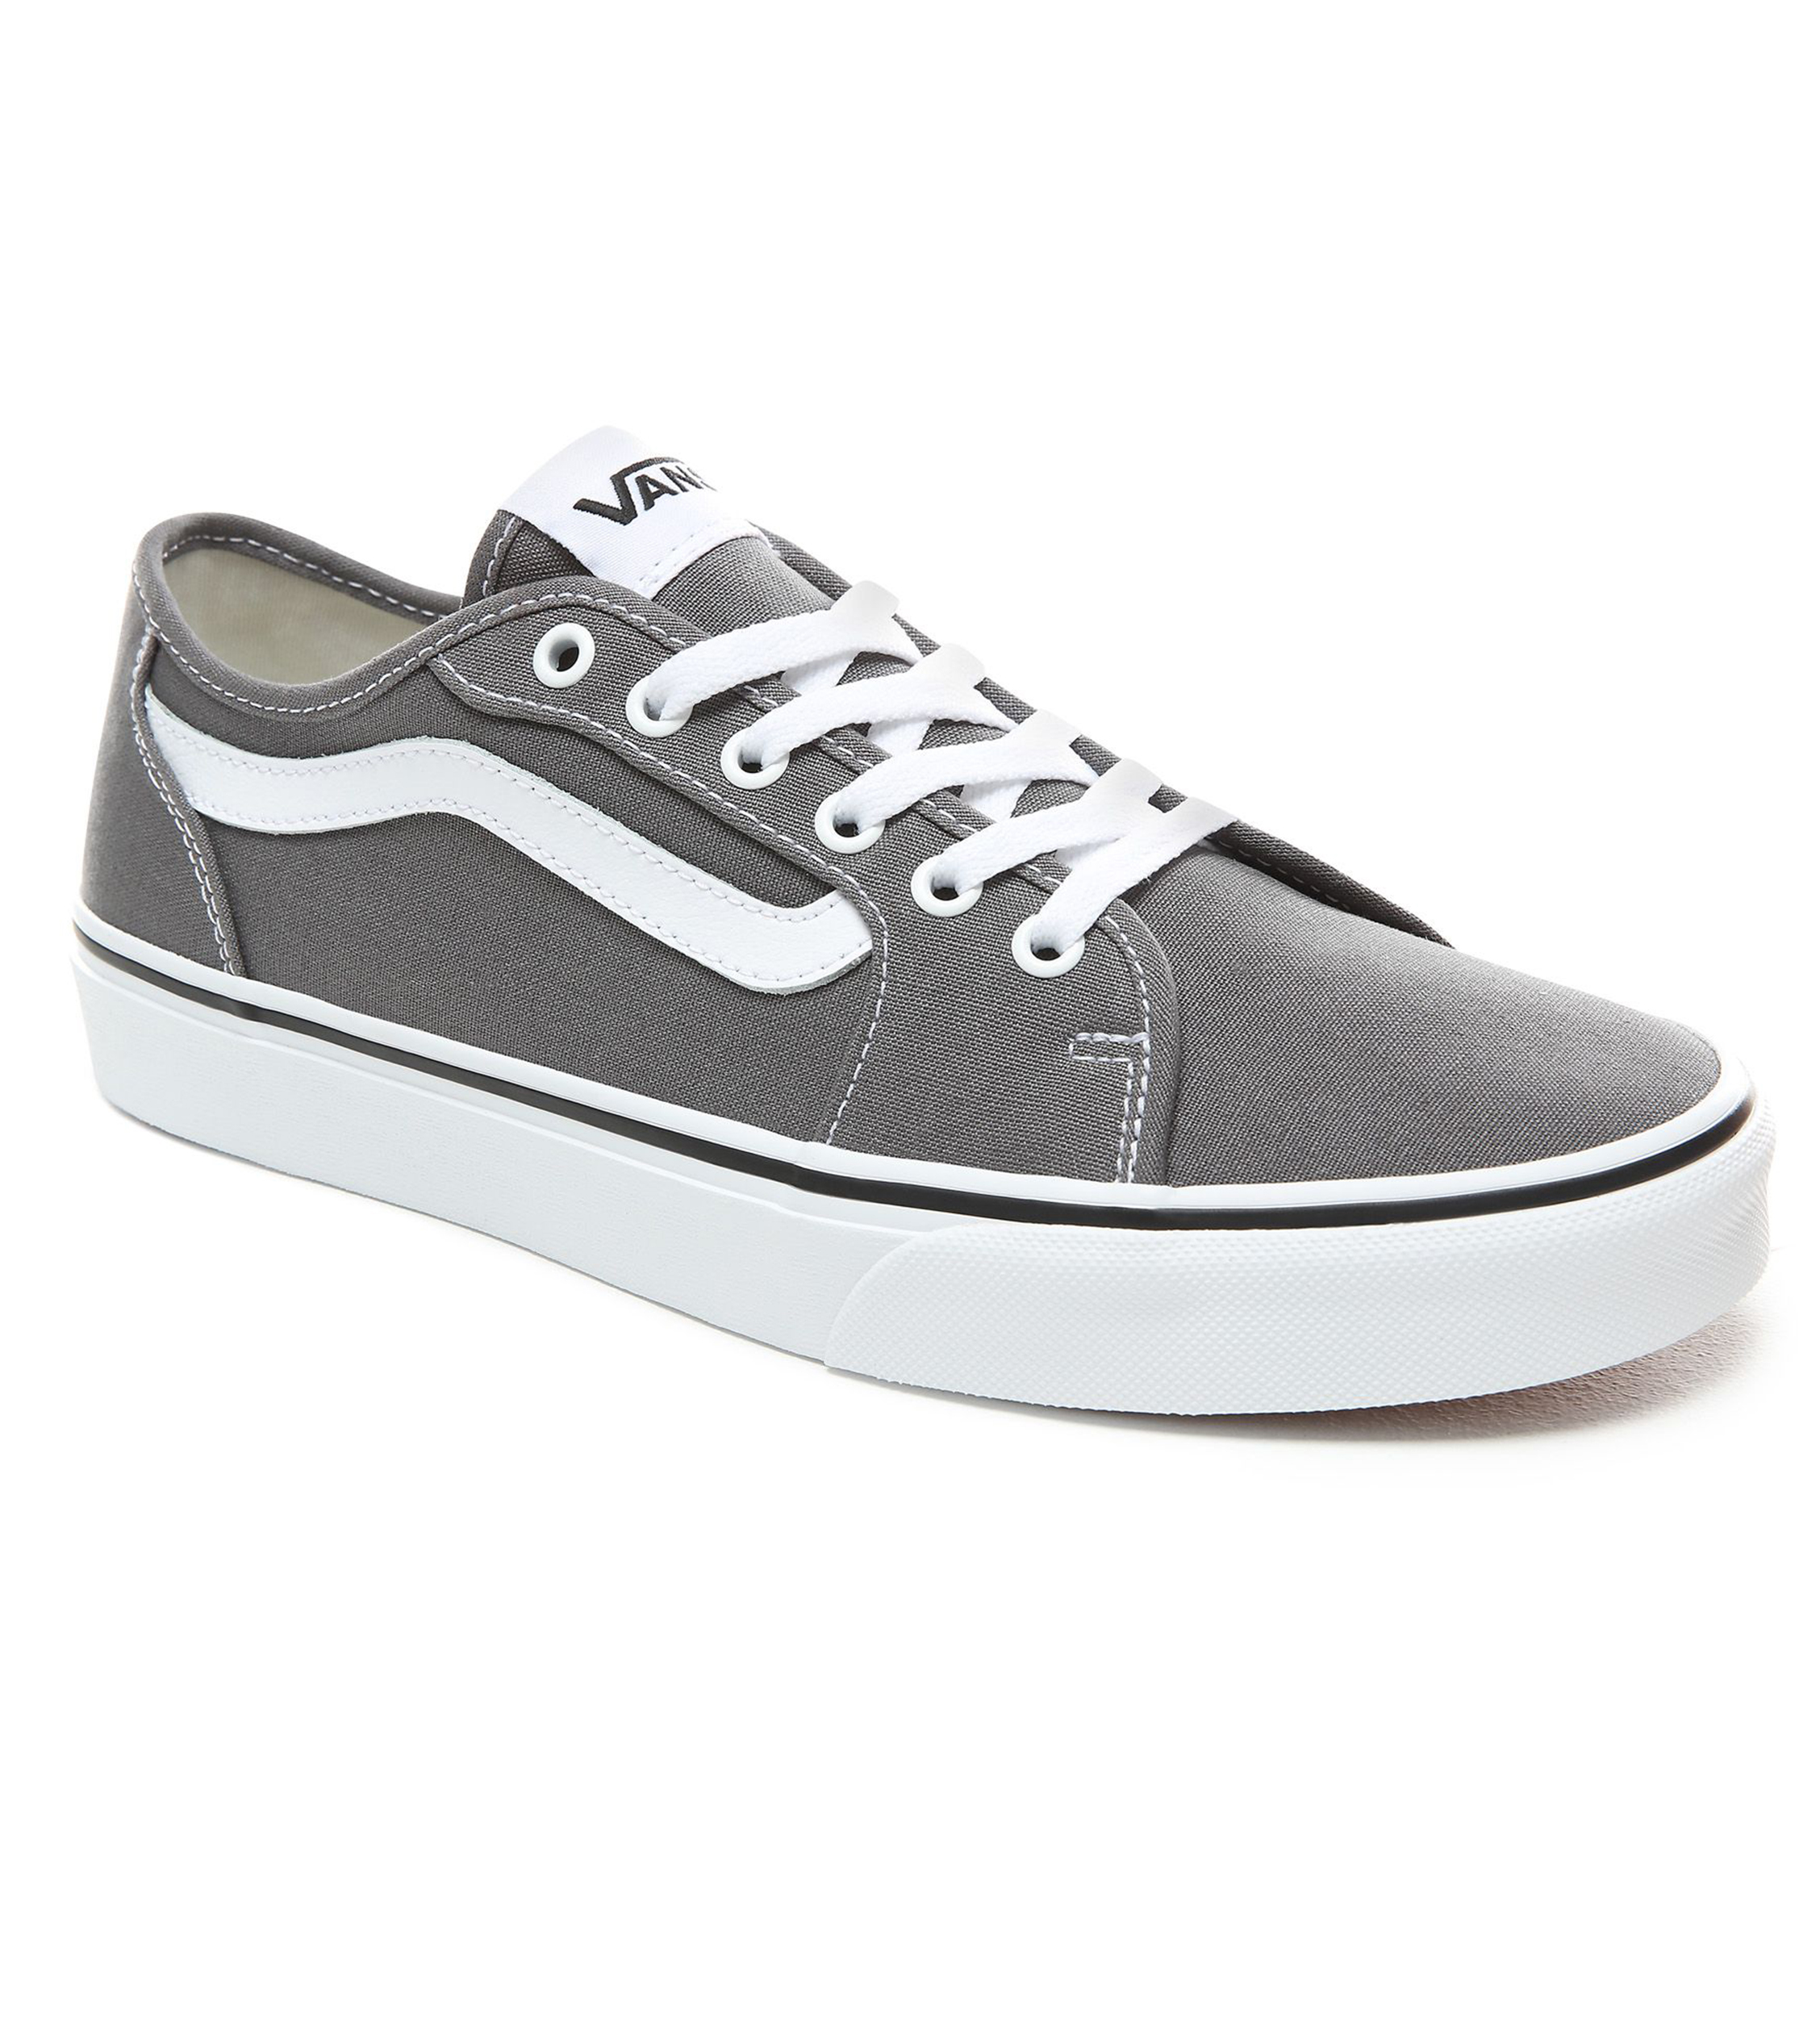 770eacdc6aba2b Click on the Image to Enlarge. More Details. These stylish VANS Filmore  Decon Low Canvas Stripe Trainers ...